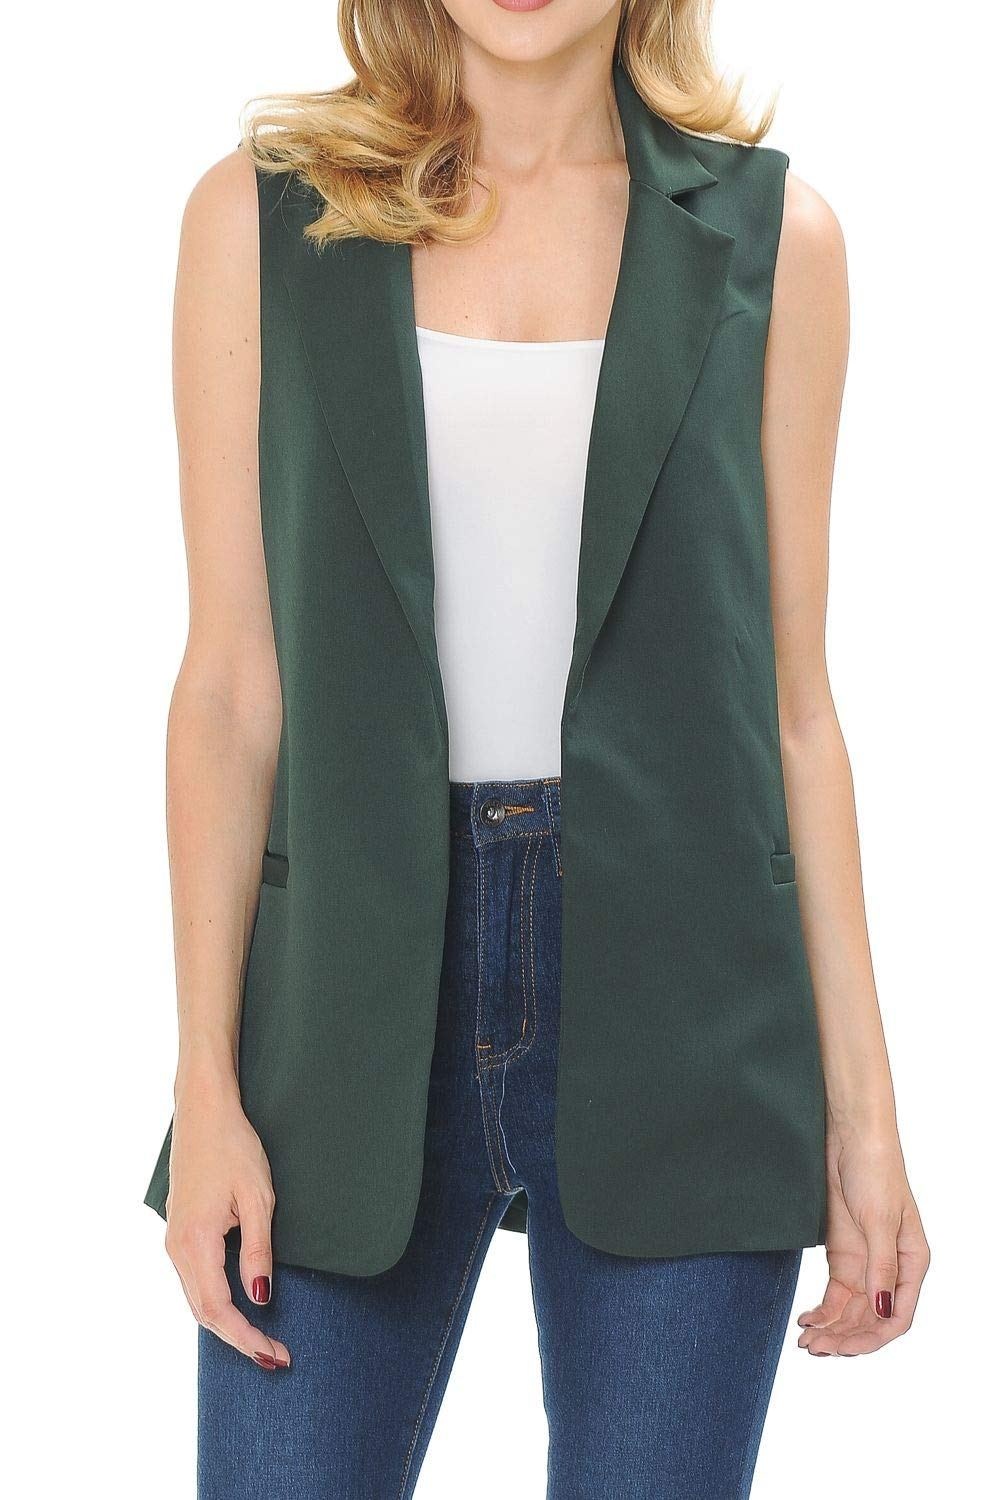 Auliné Collection Womens Work Casual Open Front Notched Lapel Collar Blazer Vest Hunter Green Small by Auliné Collection